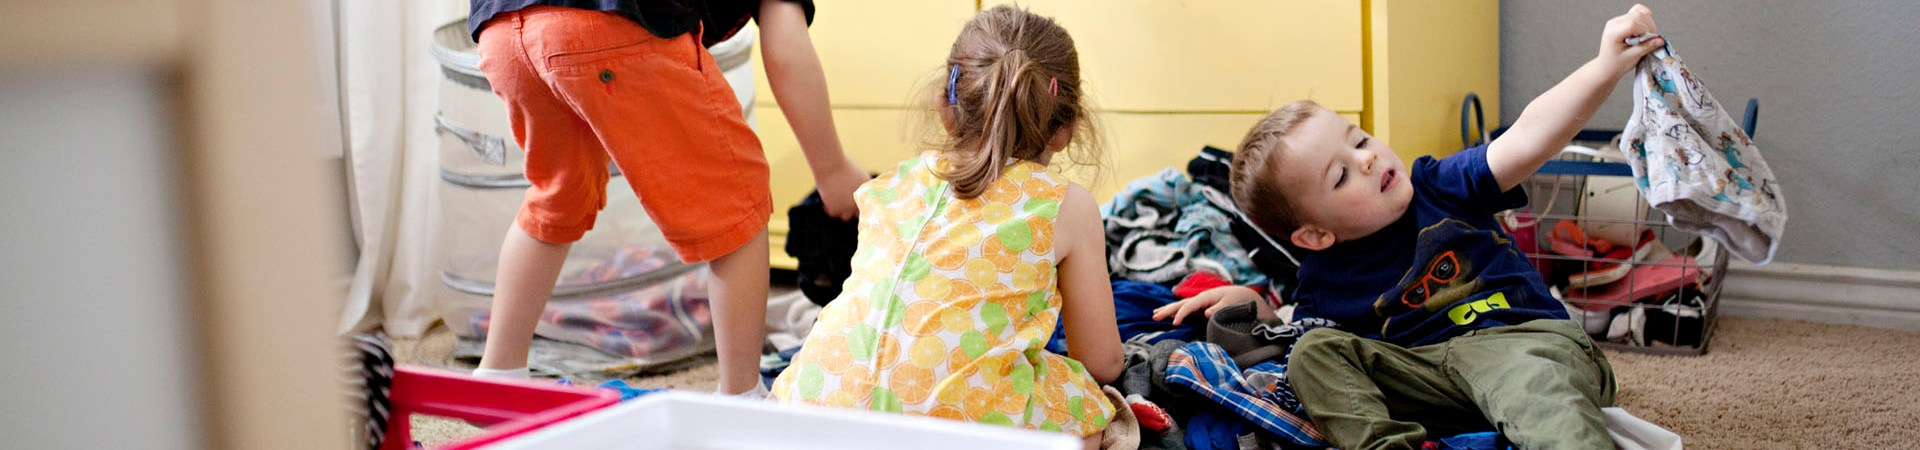 kids tidying their room sorting clothes